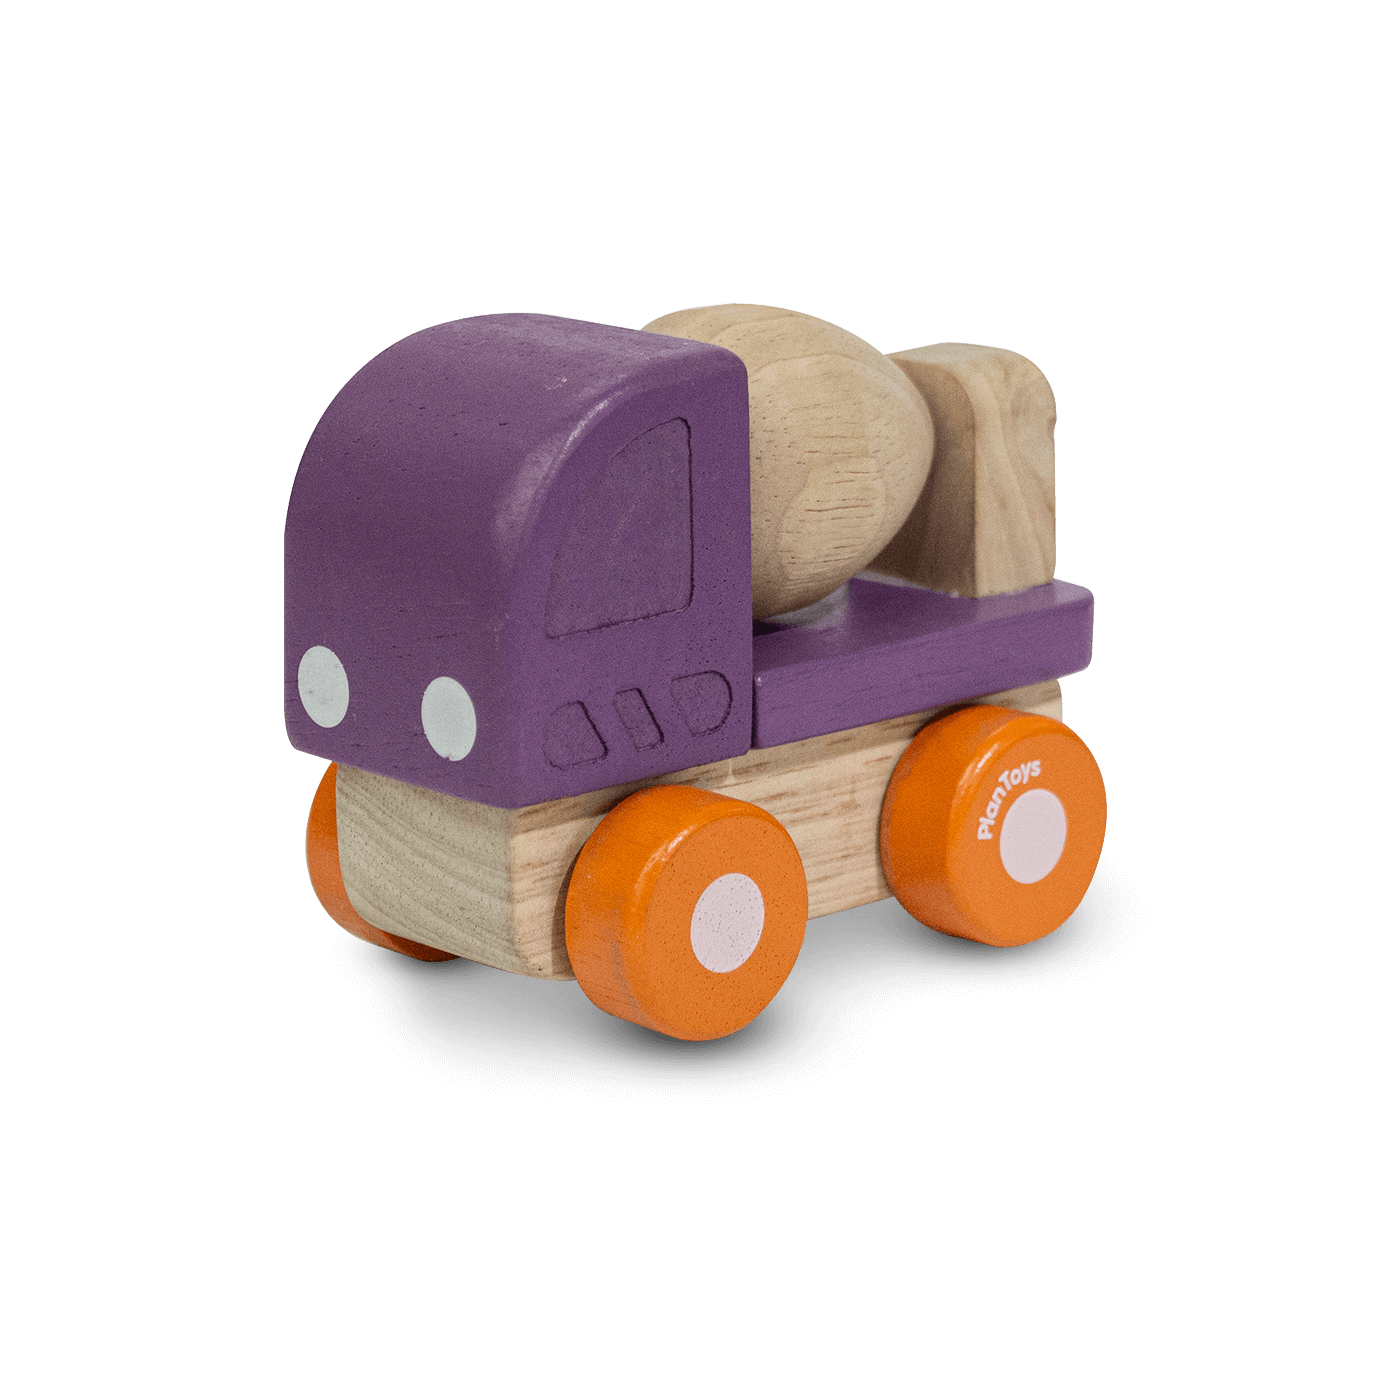 5442_PlanToys_MINI_CEMENT_TRUCK_Active_Play_Fine_Motor_Coordination_Imagination_Language_and_Communications_12m_Wooden_toys_Education_toys_Safety_Toys_Non-toxic_0.png